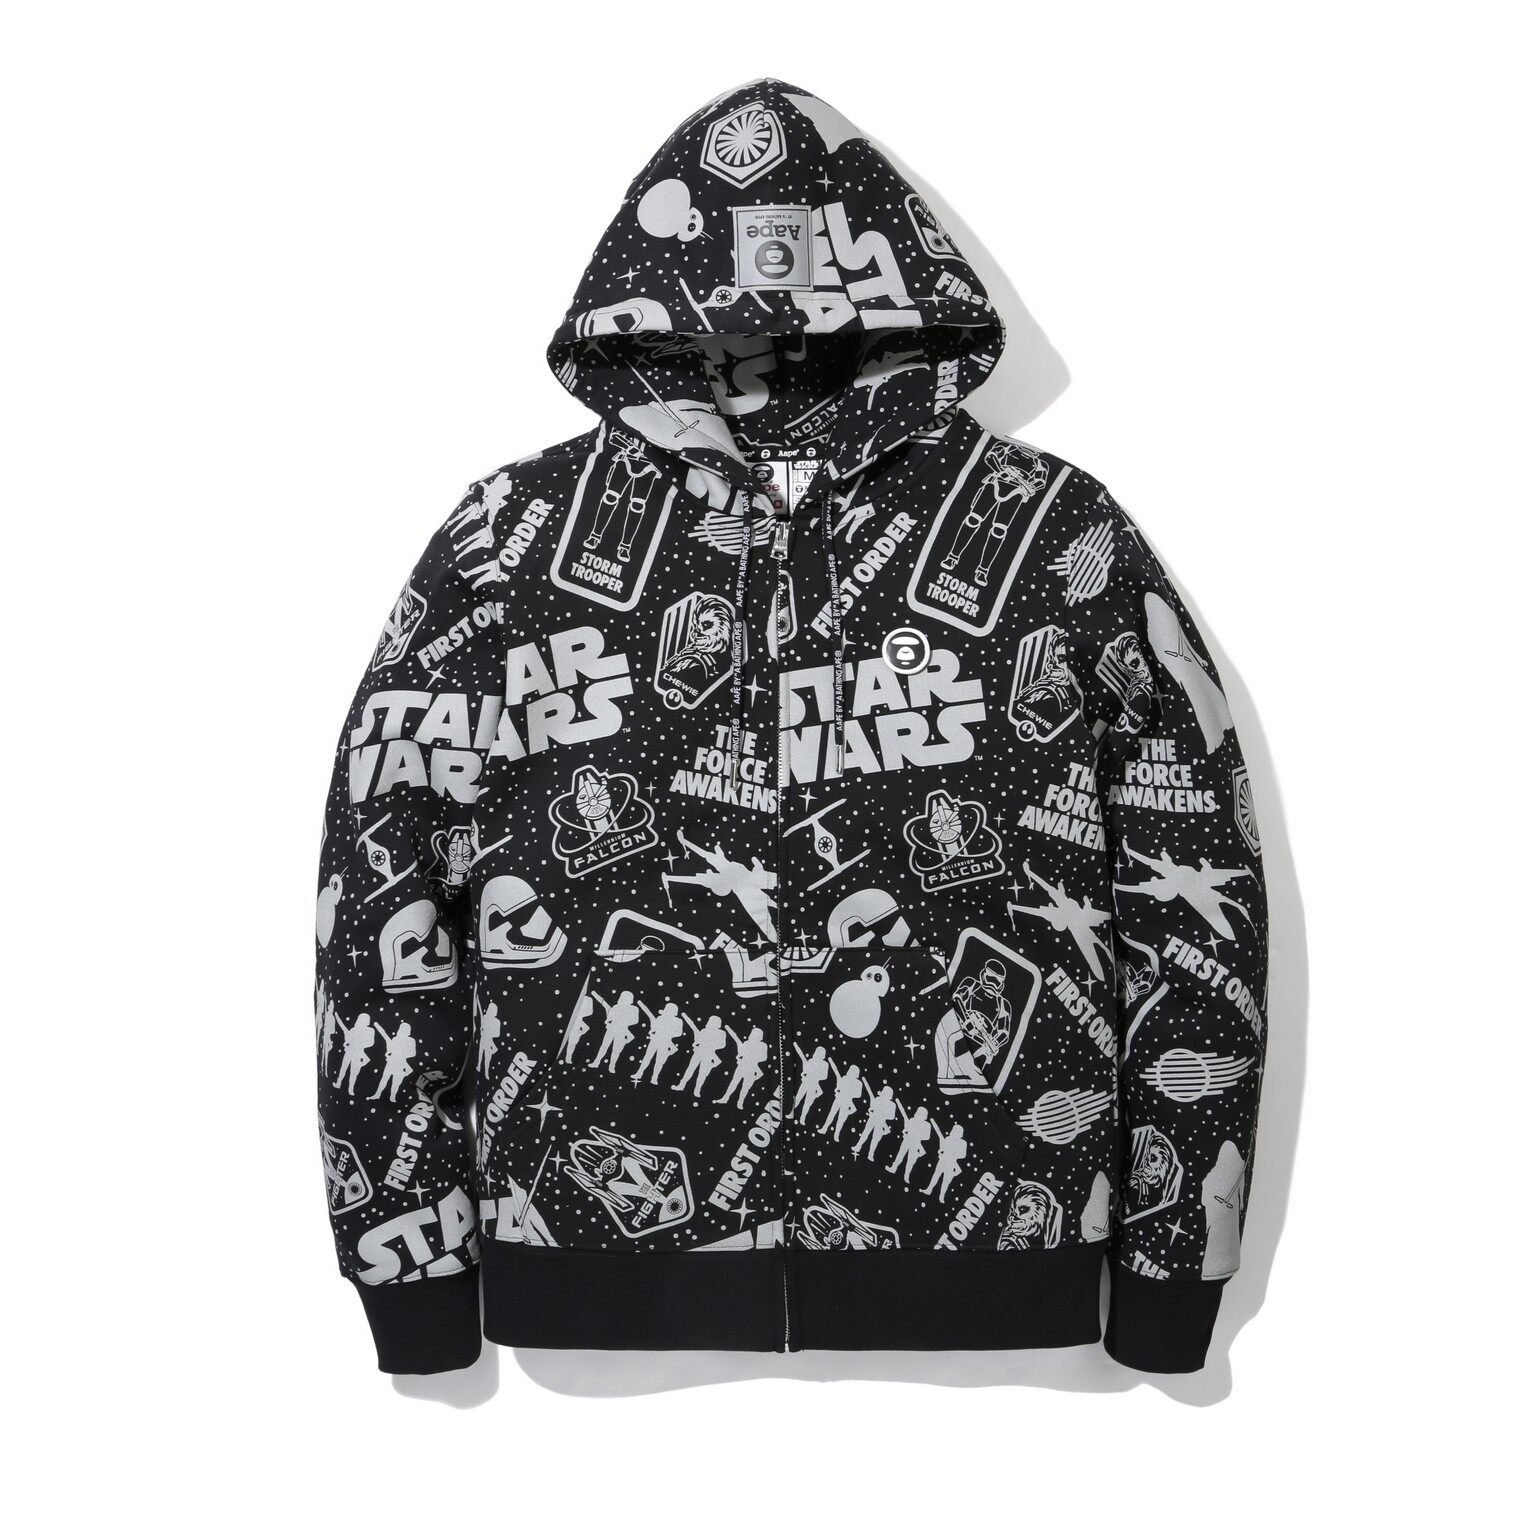 AAPE BY A BATHING APE STAR WARS, AAPE, 星球大戰:原力覺醒